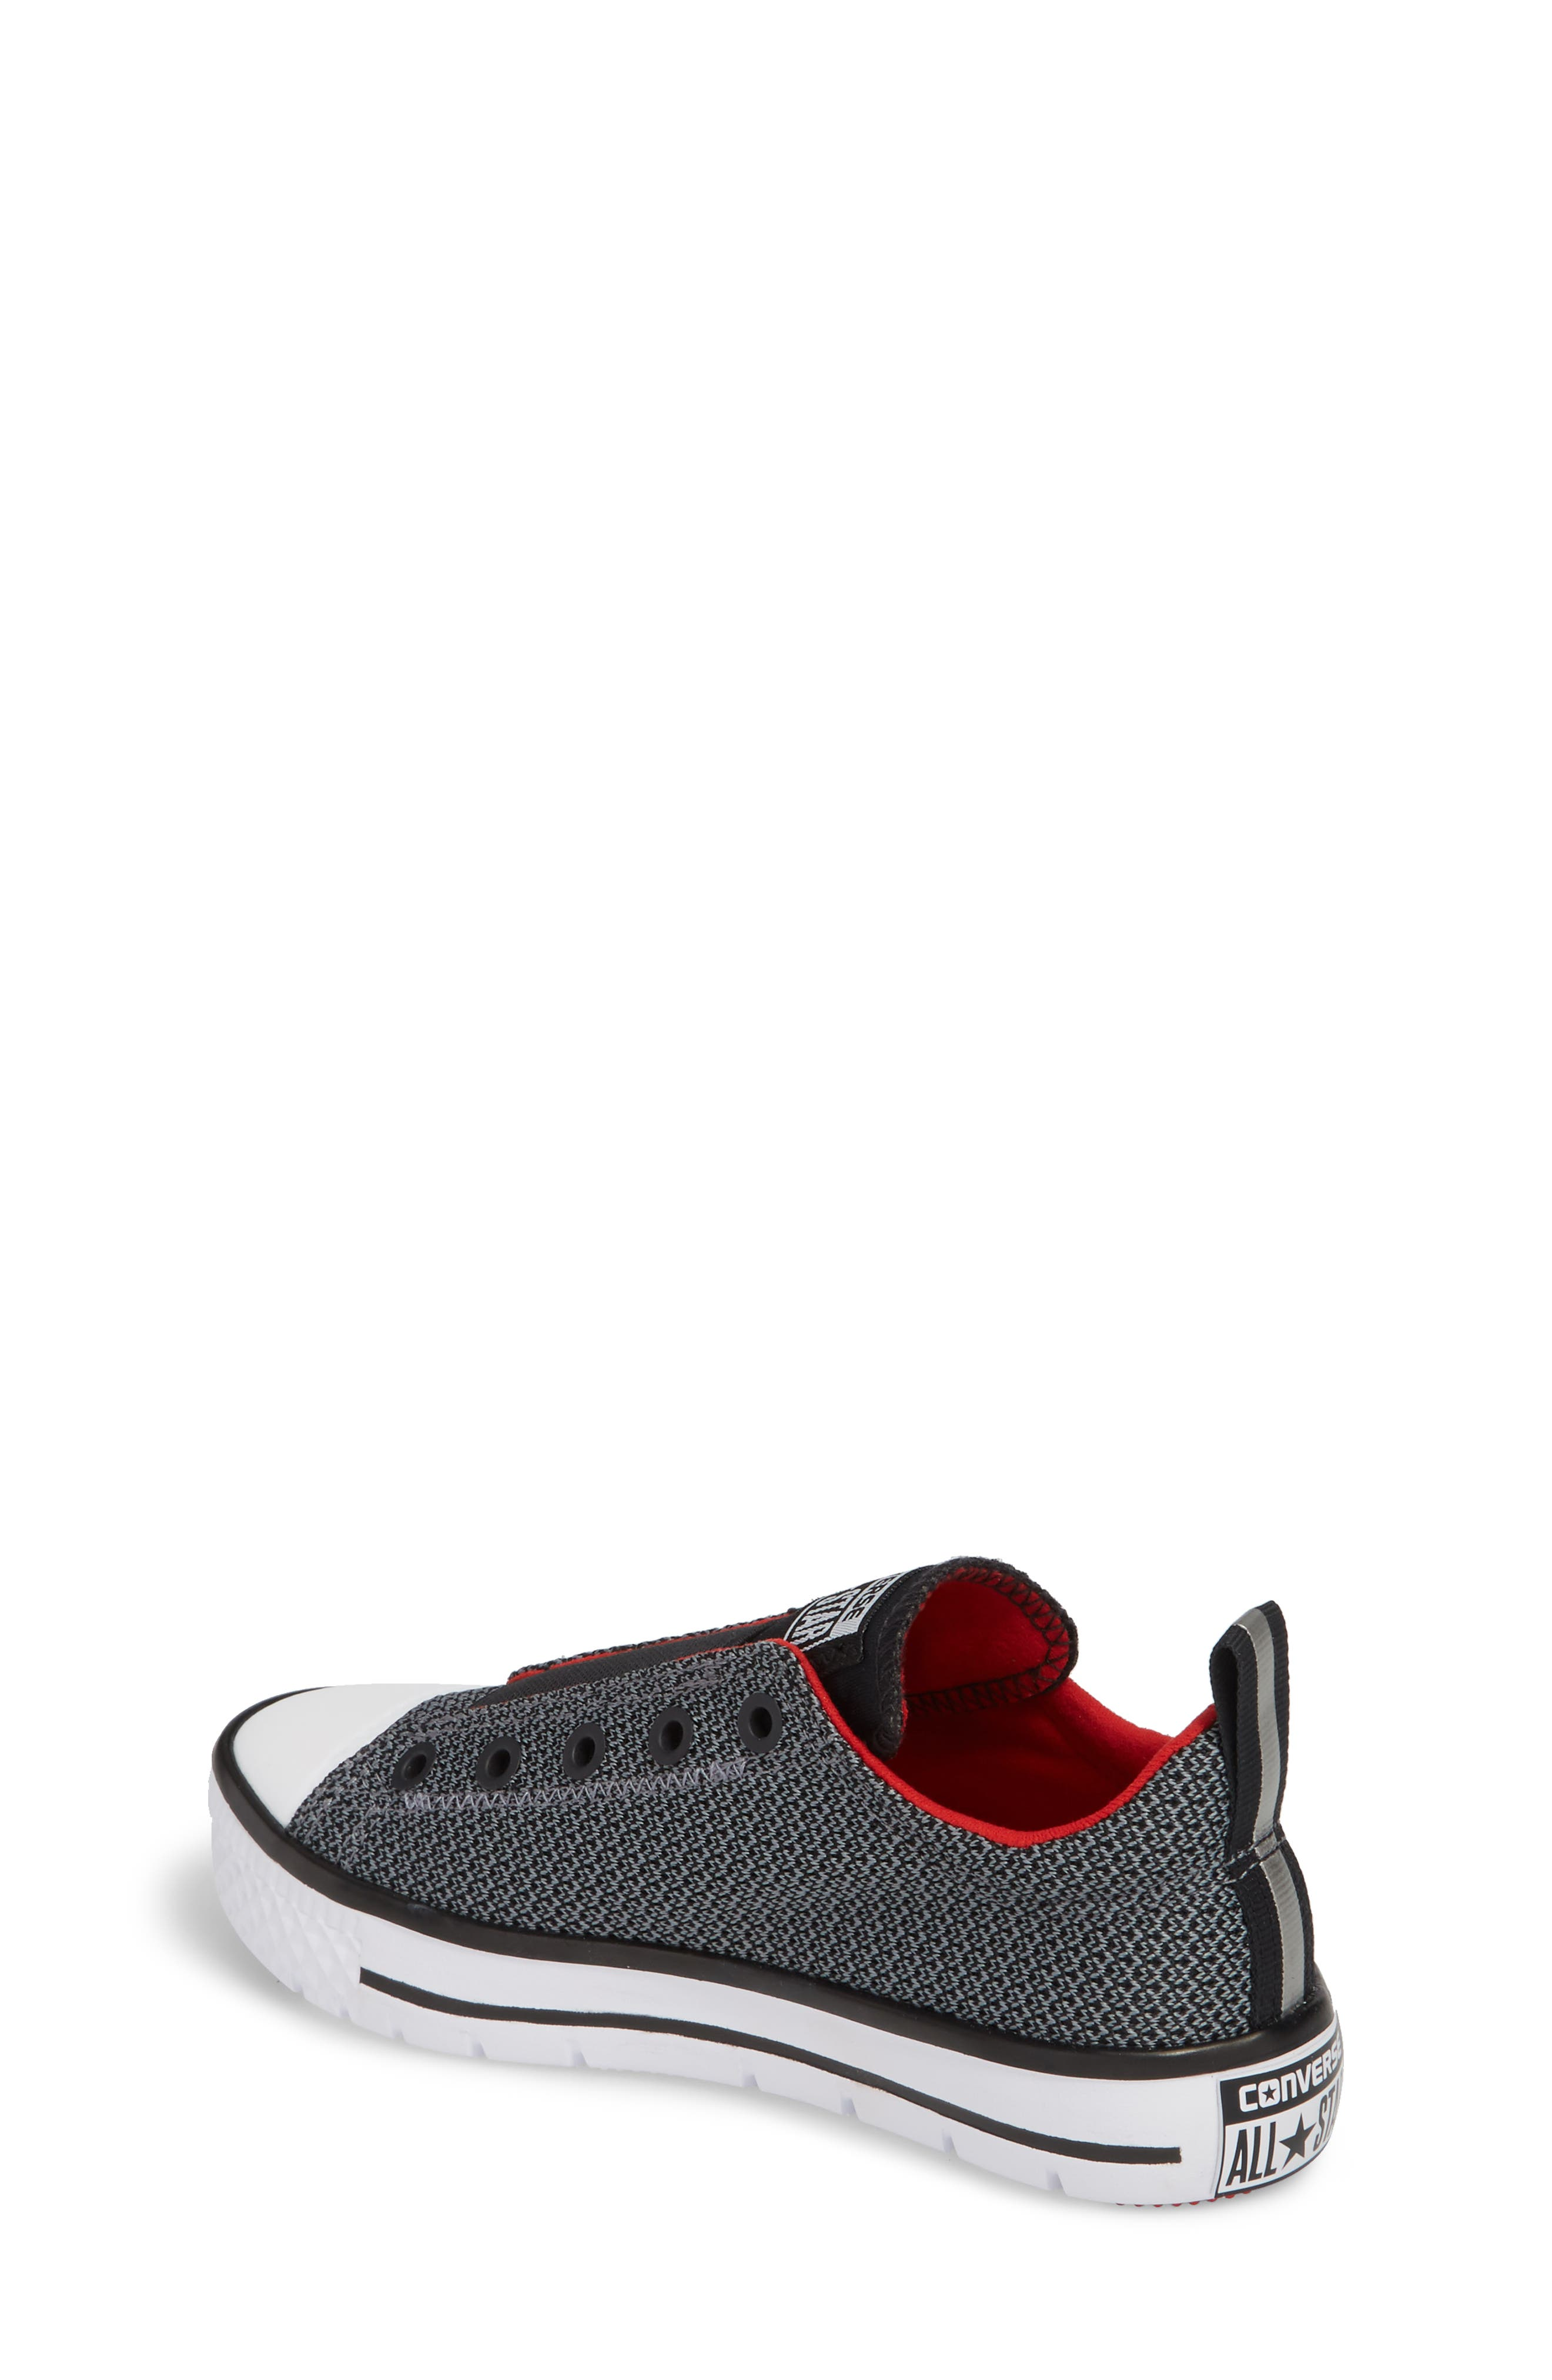 Chuck Taylor<sup>®</sup> All Star<sup>®</sup> Hyper Lite Ox Slip-On Sneaker,                             Alternate thumbnail 2, color,                             039